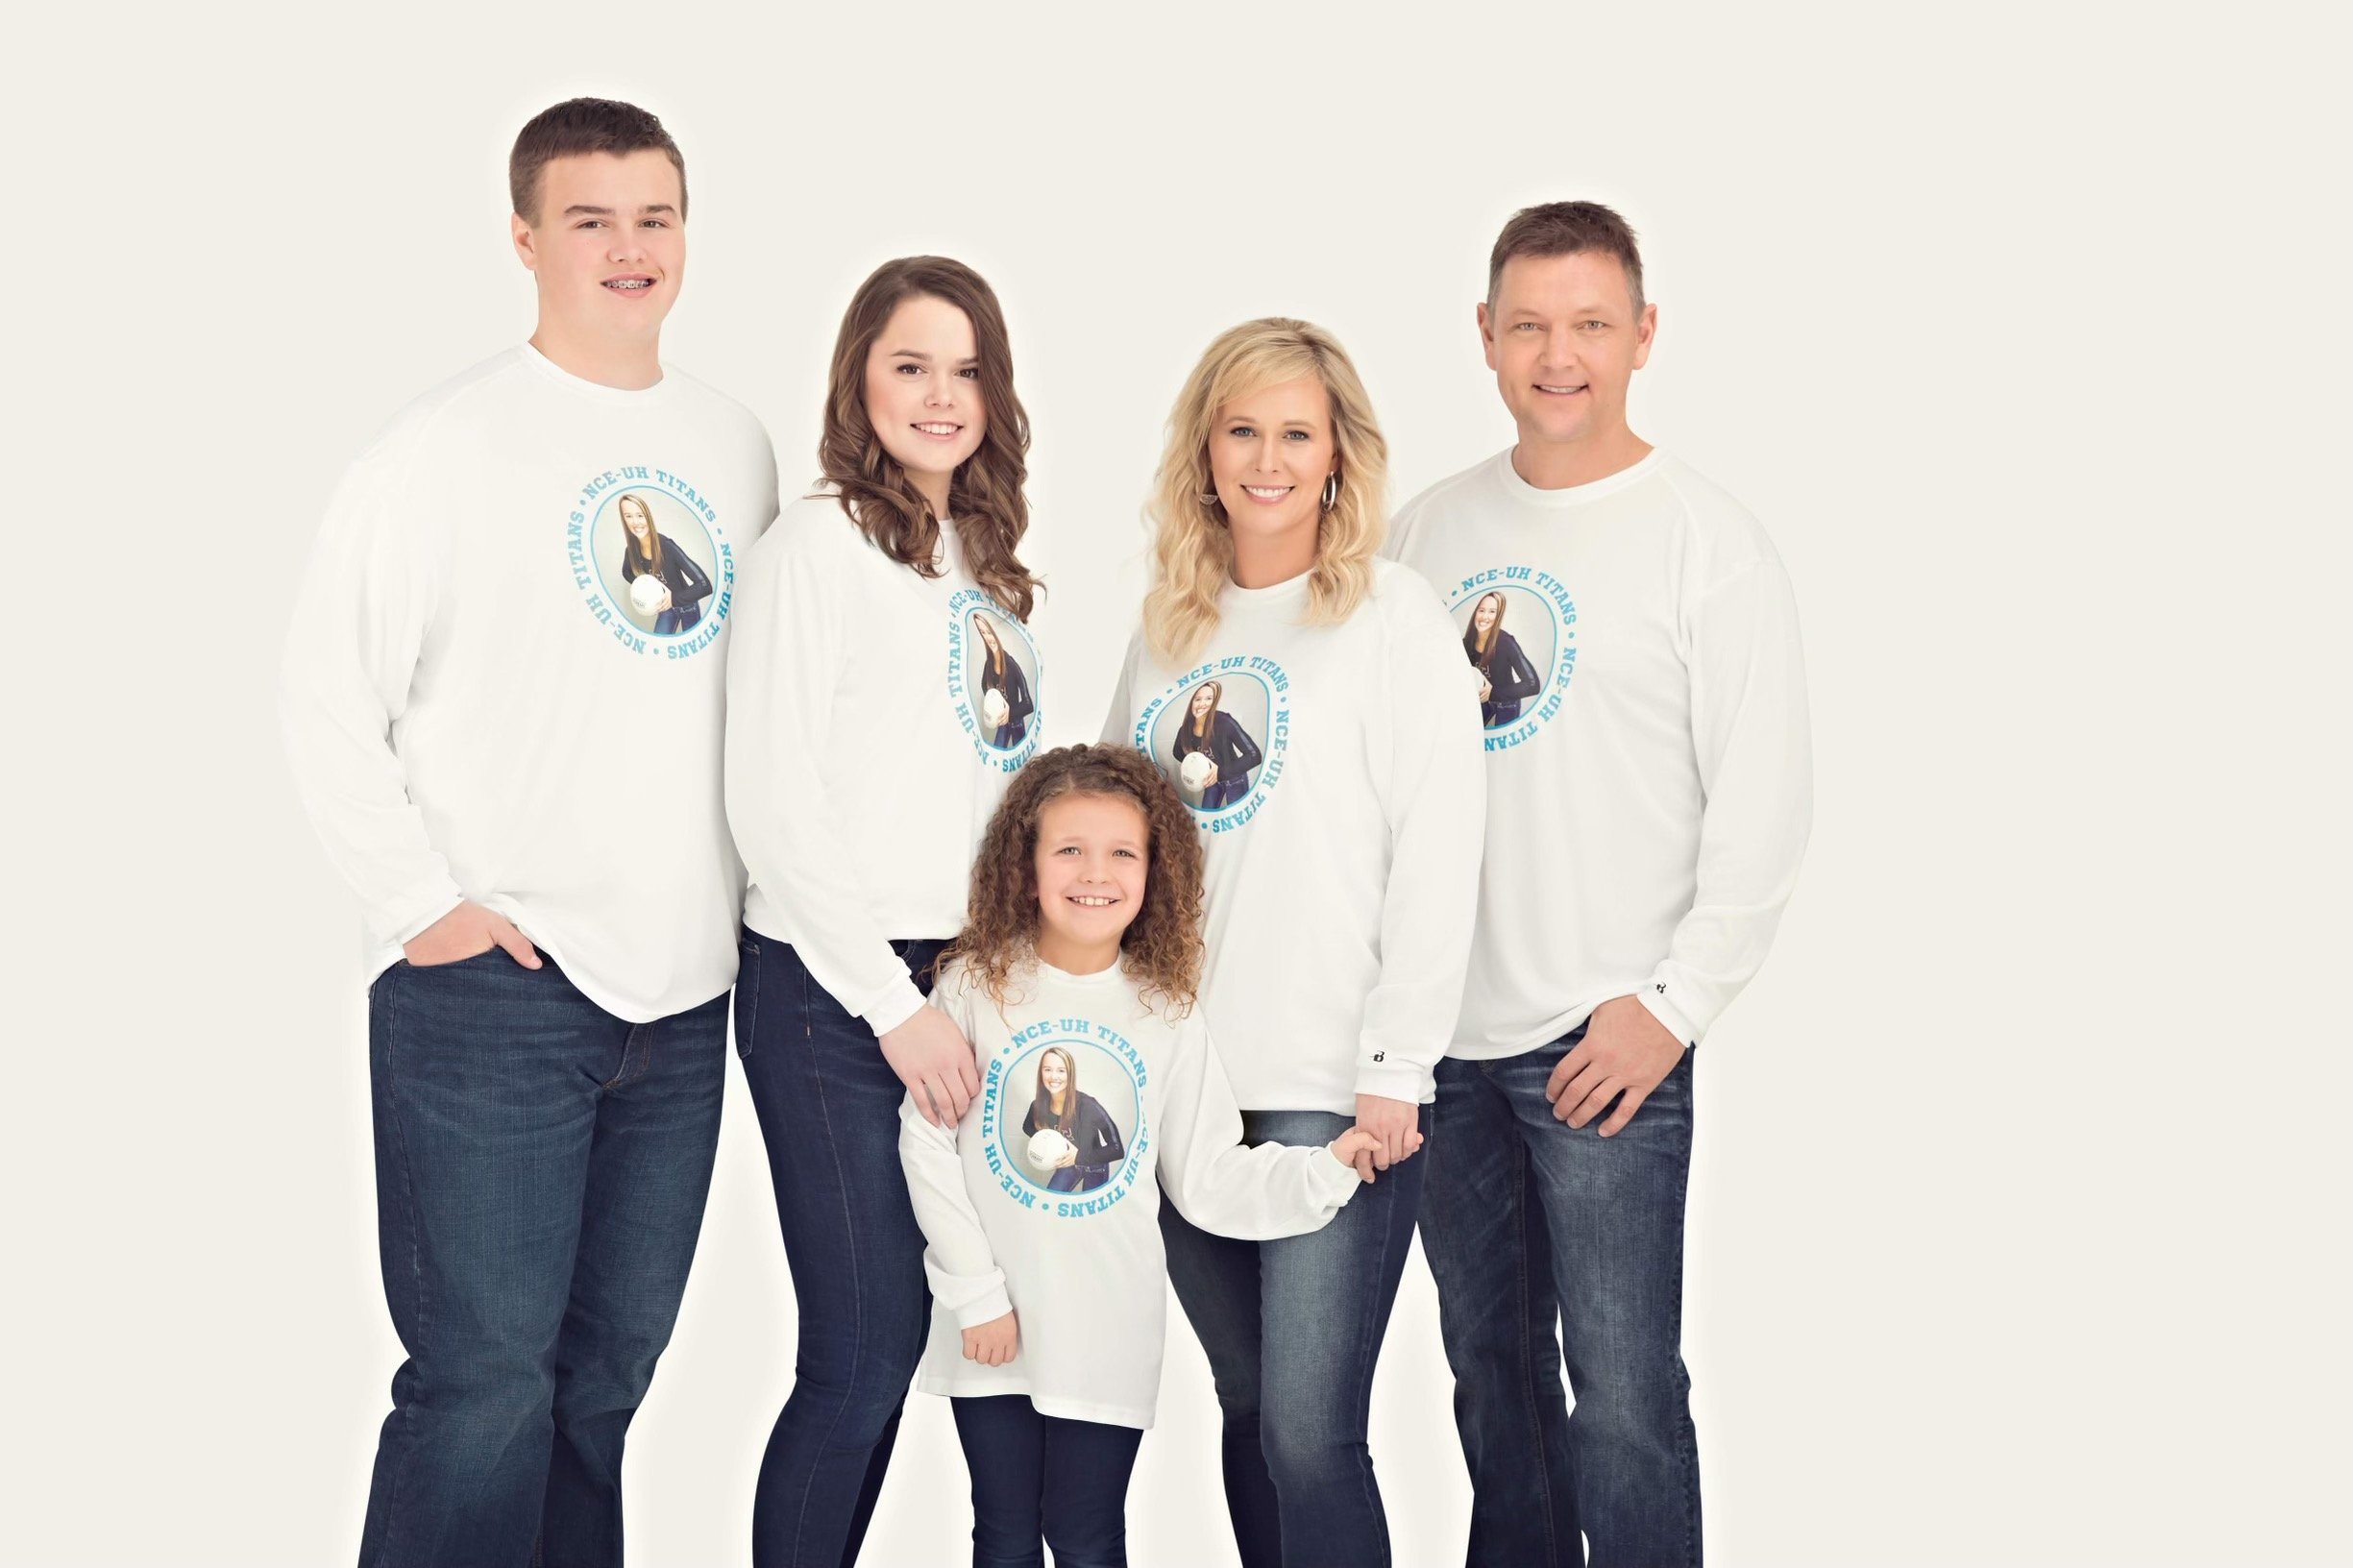 Chris Nelson with family